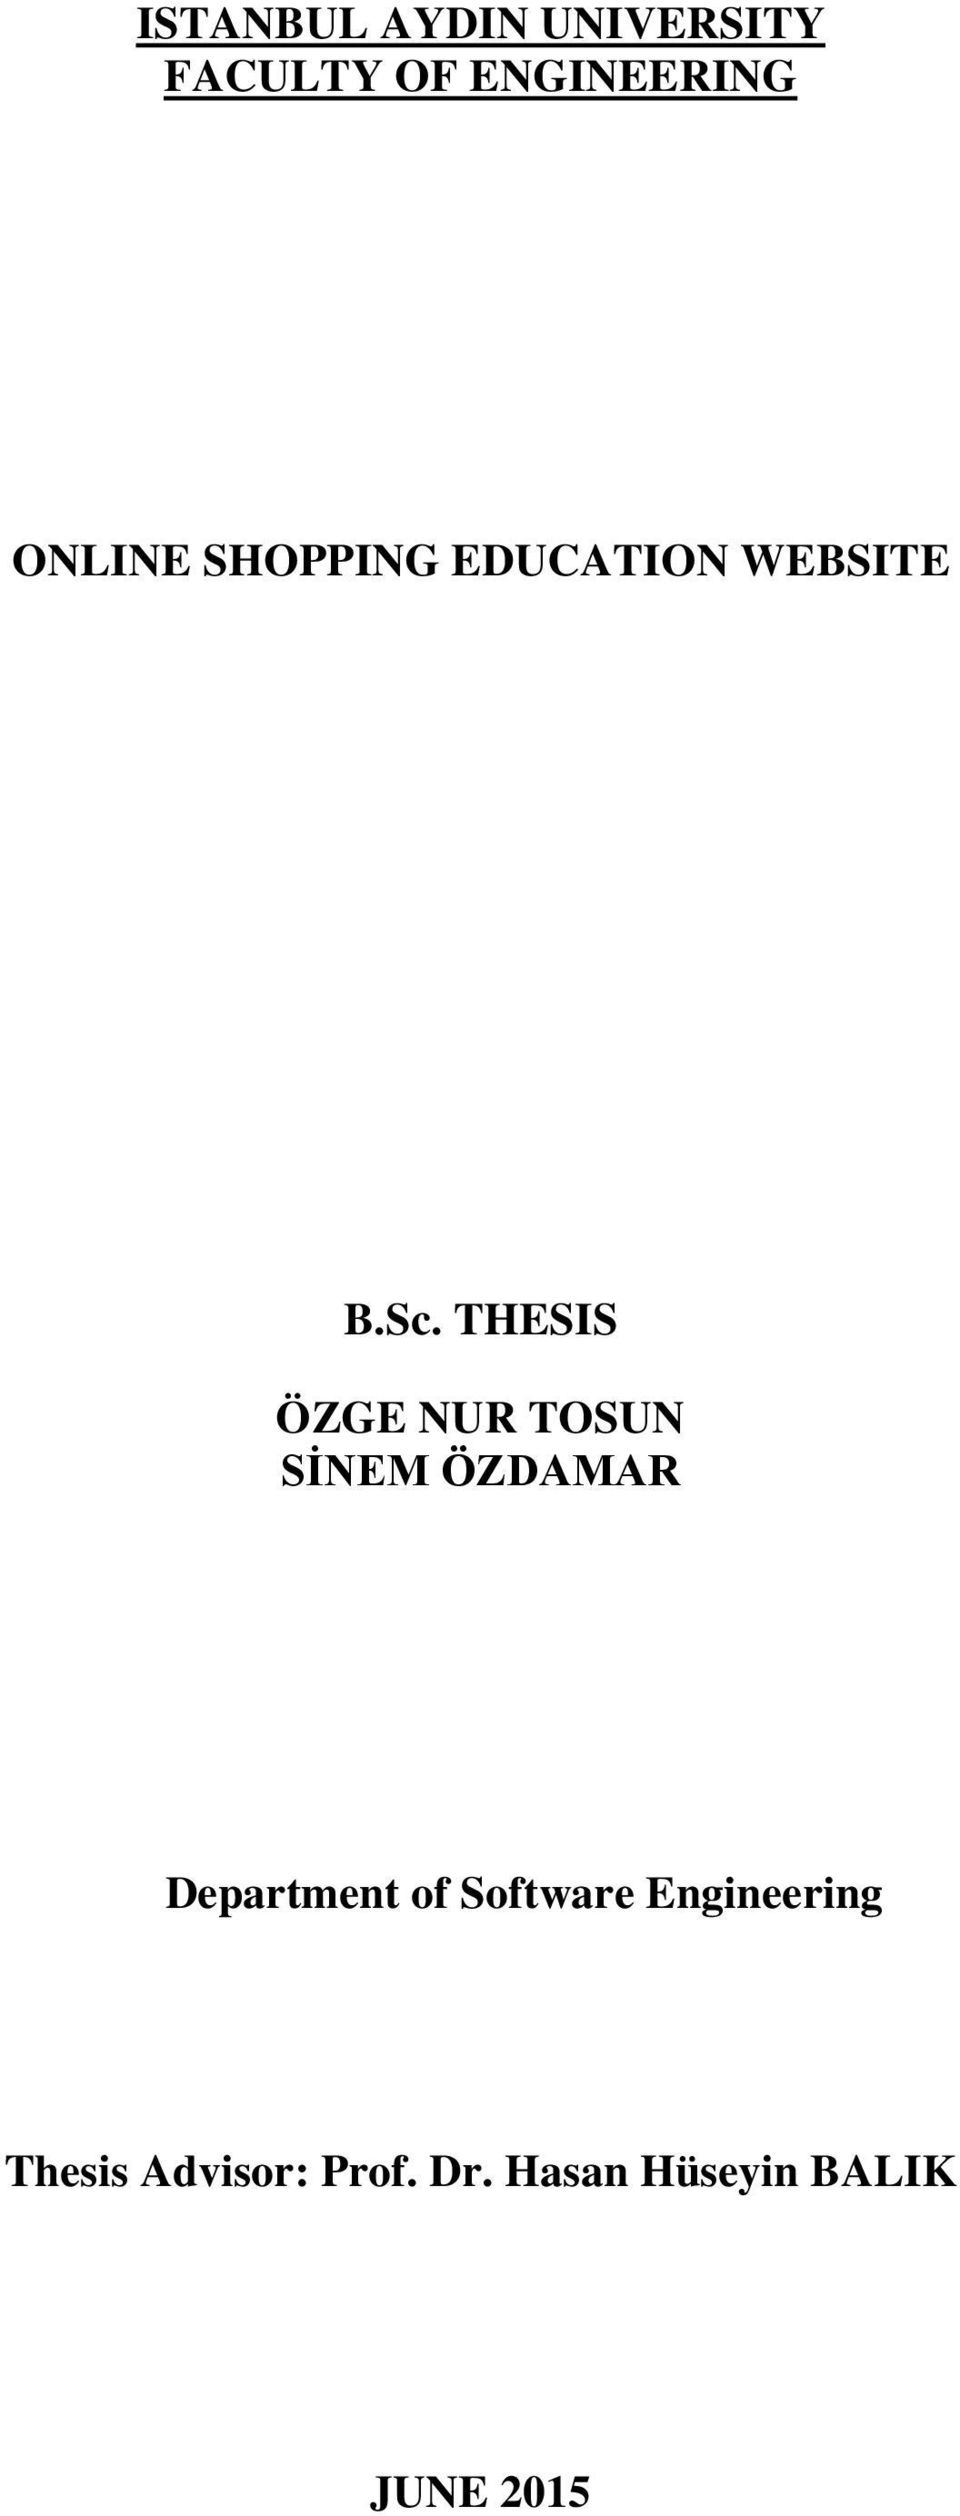 THESIS ÖZGE NUR TOSUN SİNEM ÖZDAMAR Department of